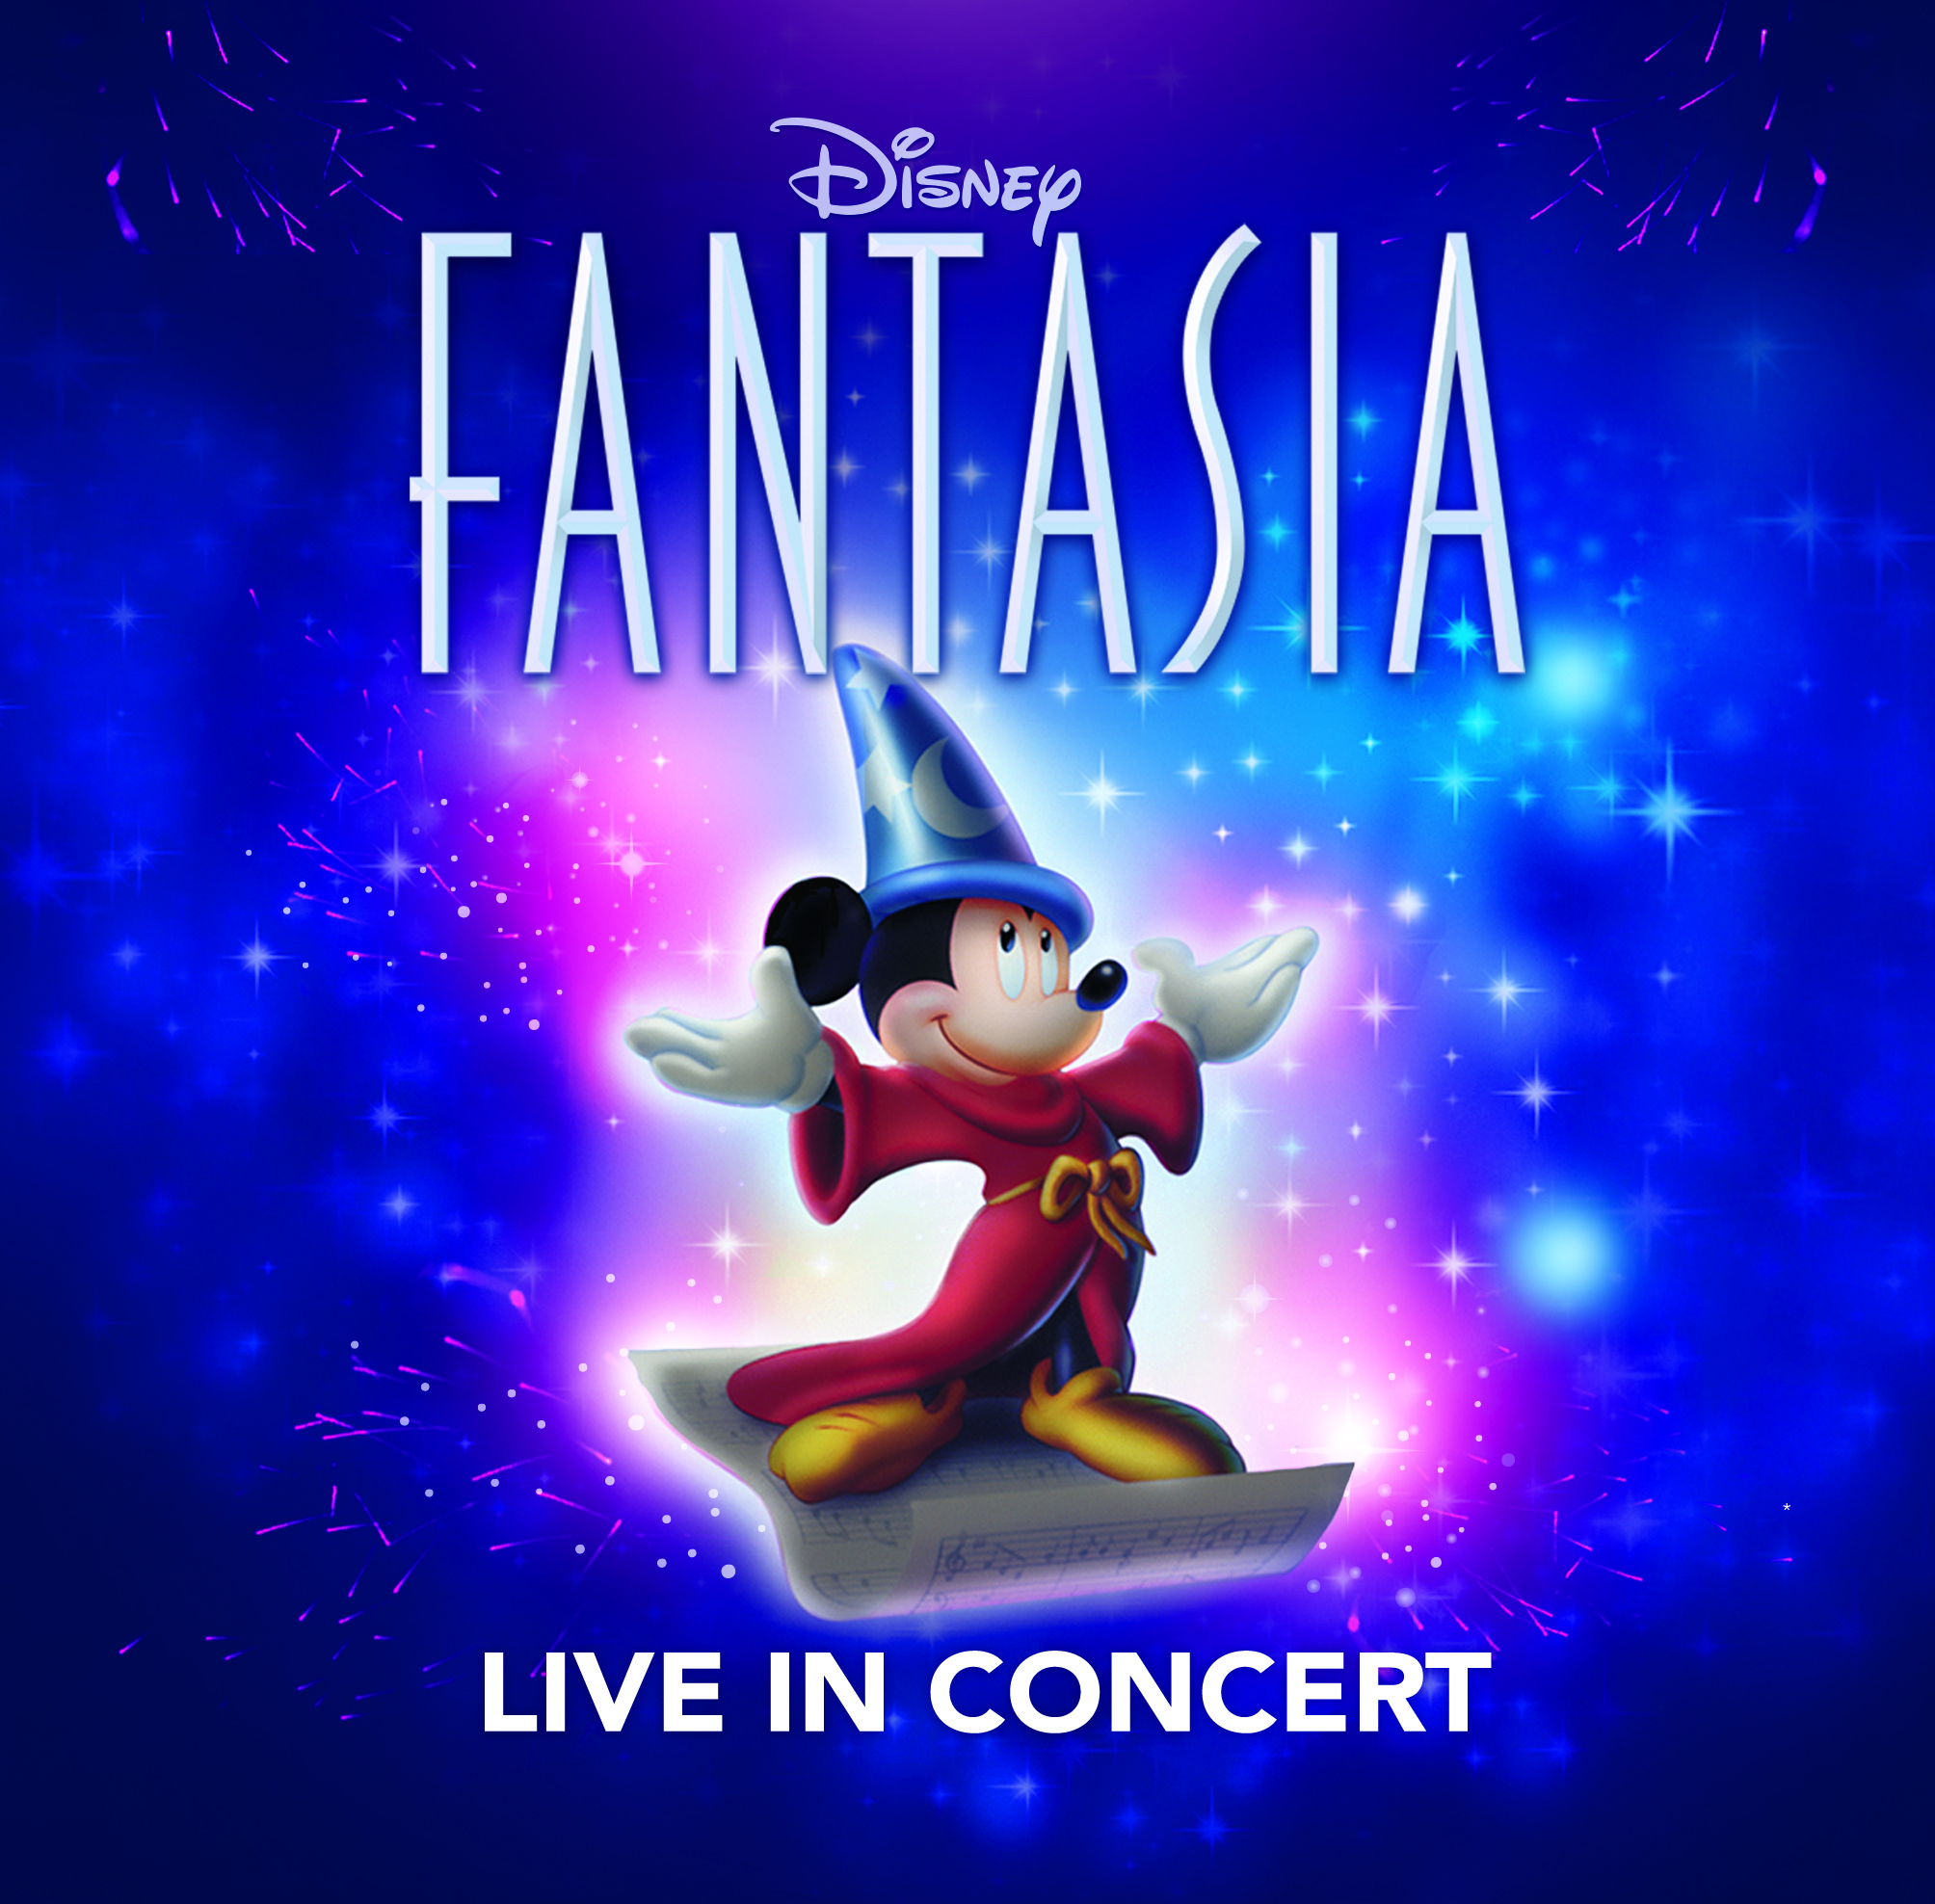 Disney Fantasia Live In Concert At Birmingham Nia